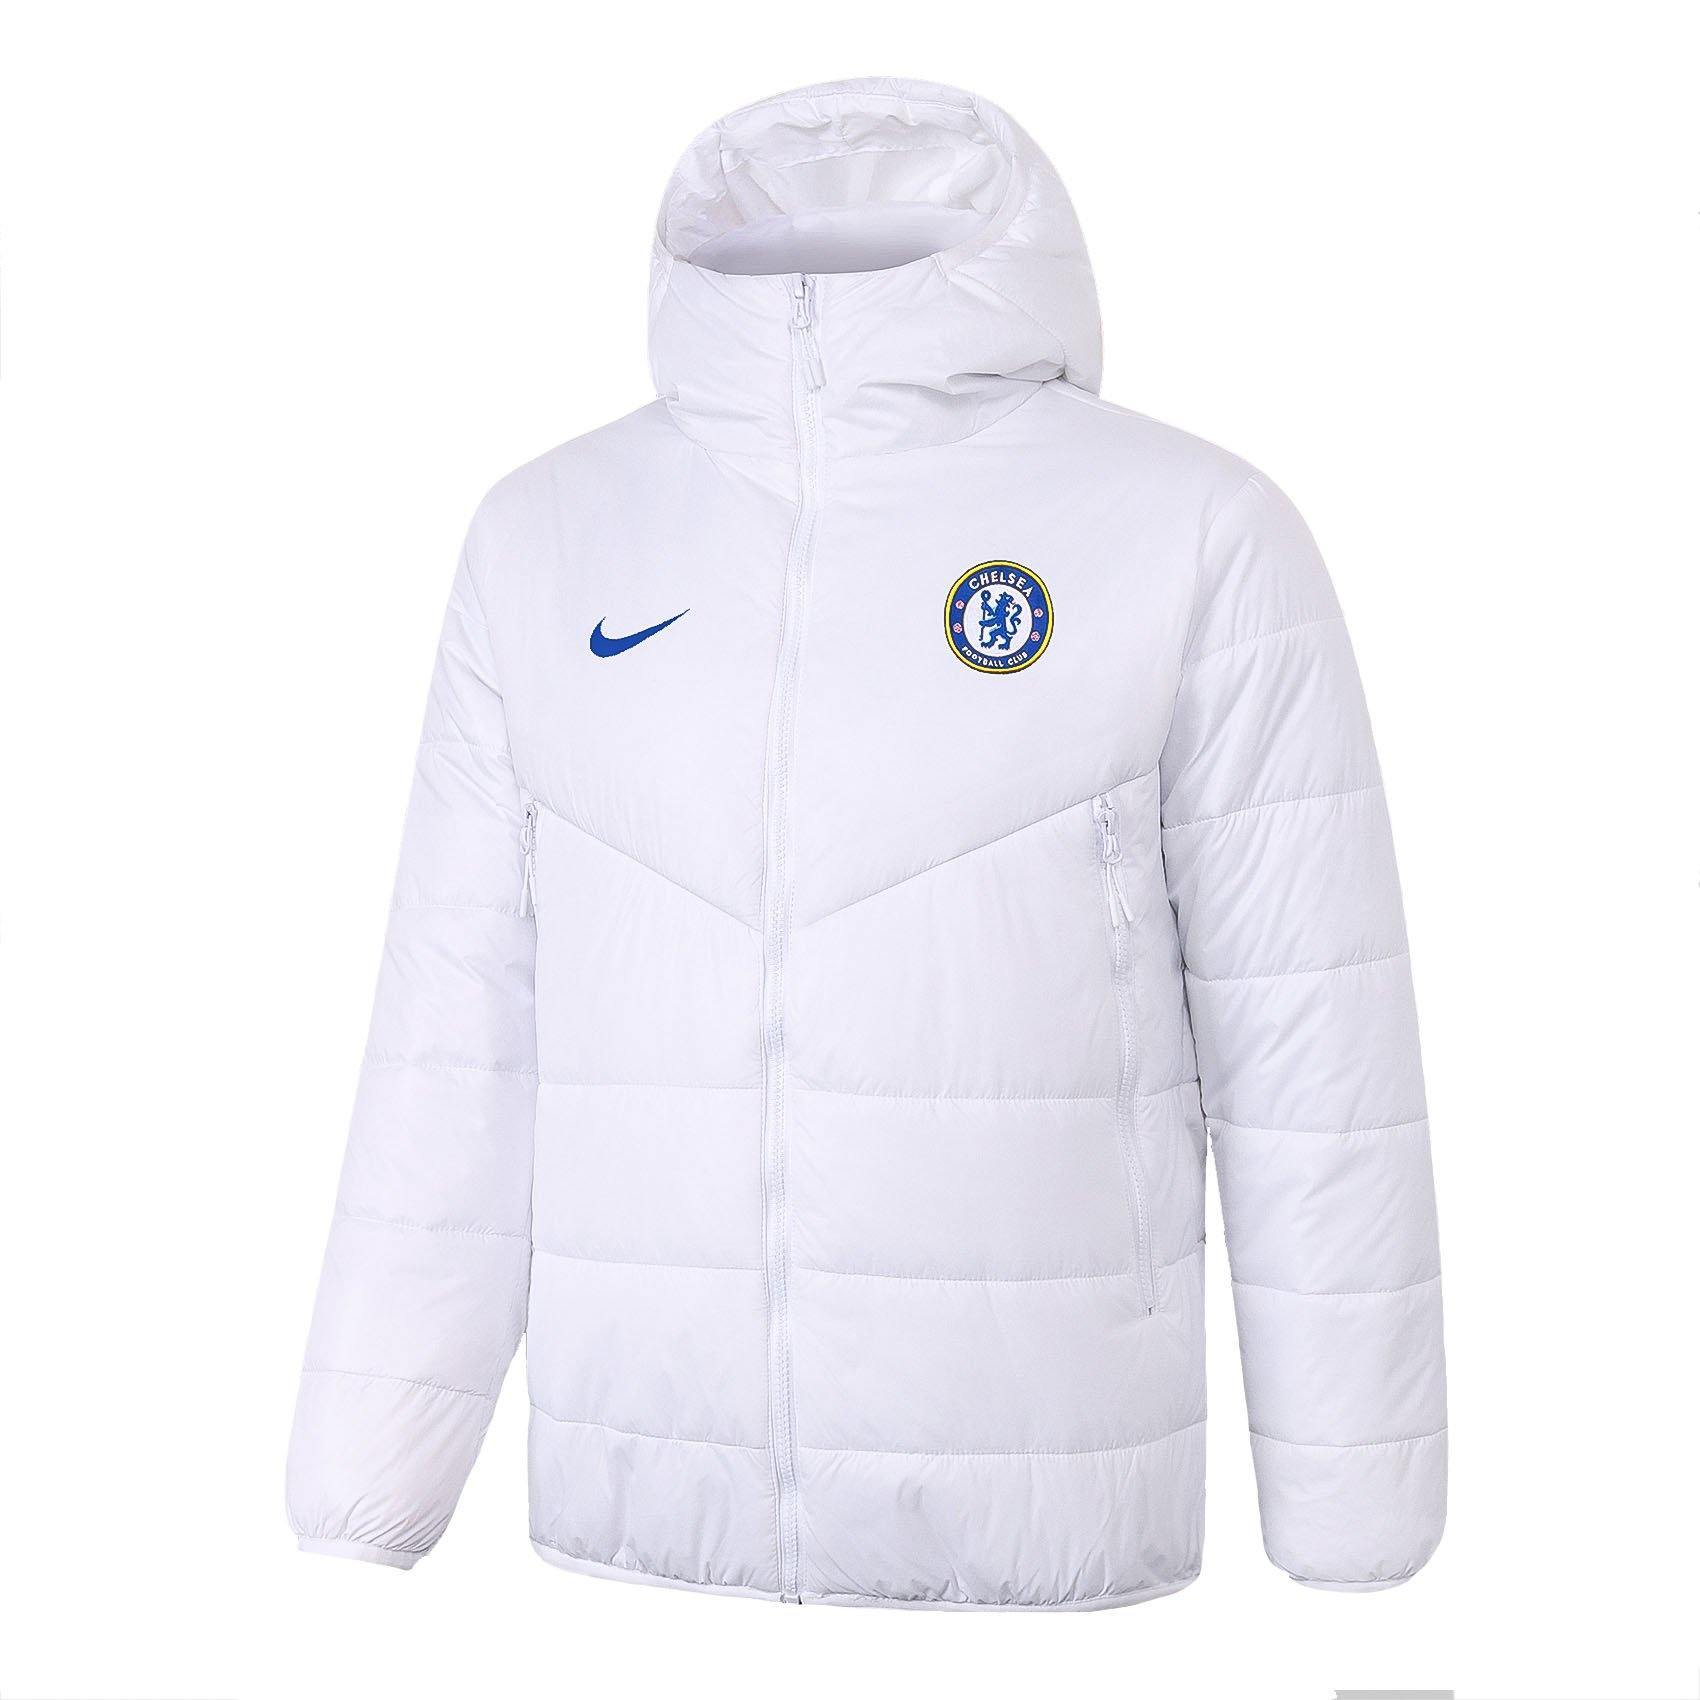 Doudoune Chelsea Nike Blanche 2021 Homme Foot Online freeshipping - Foot Online